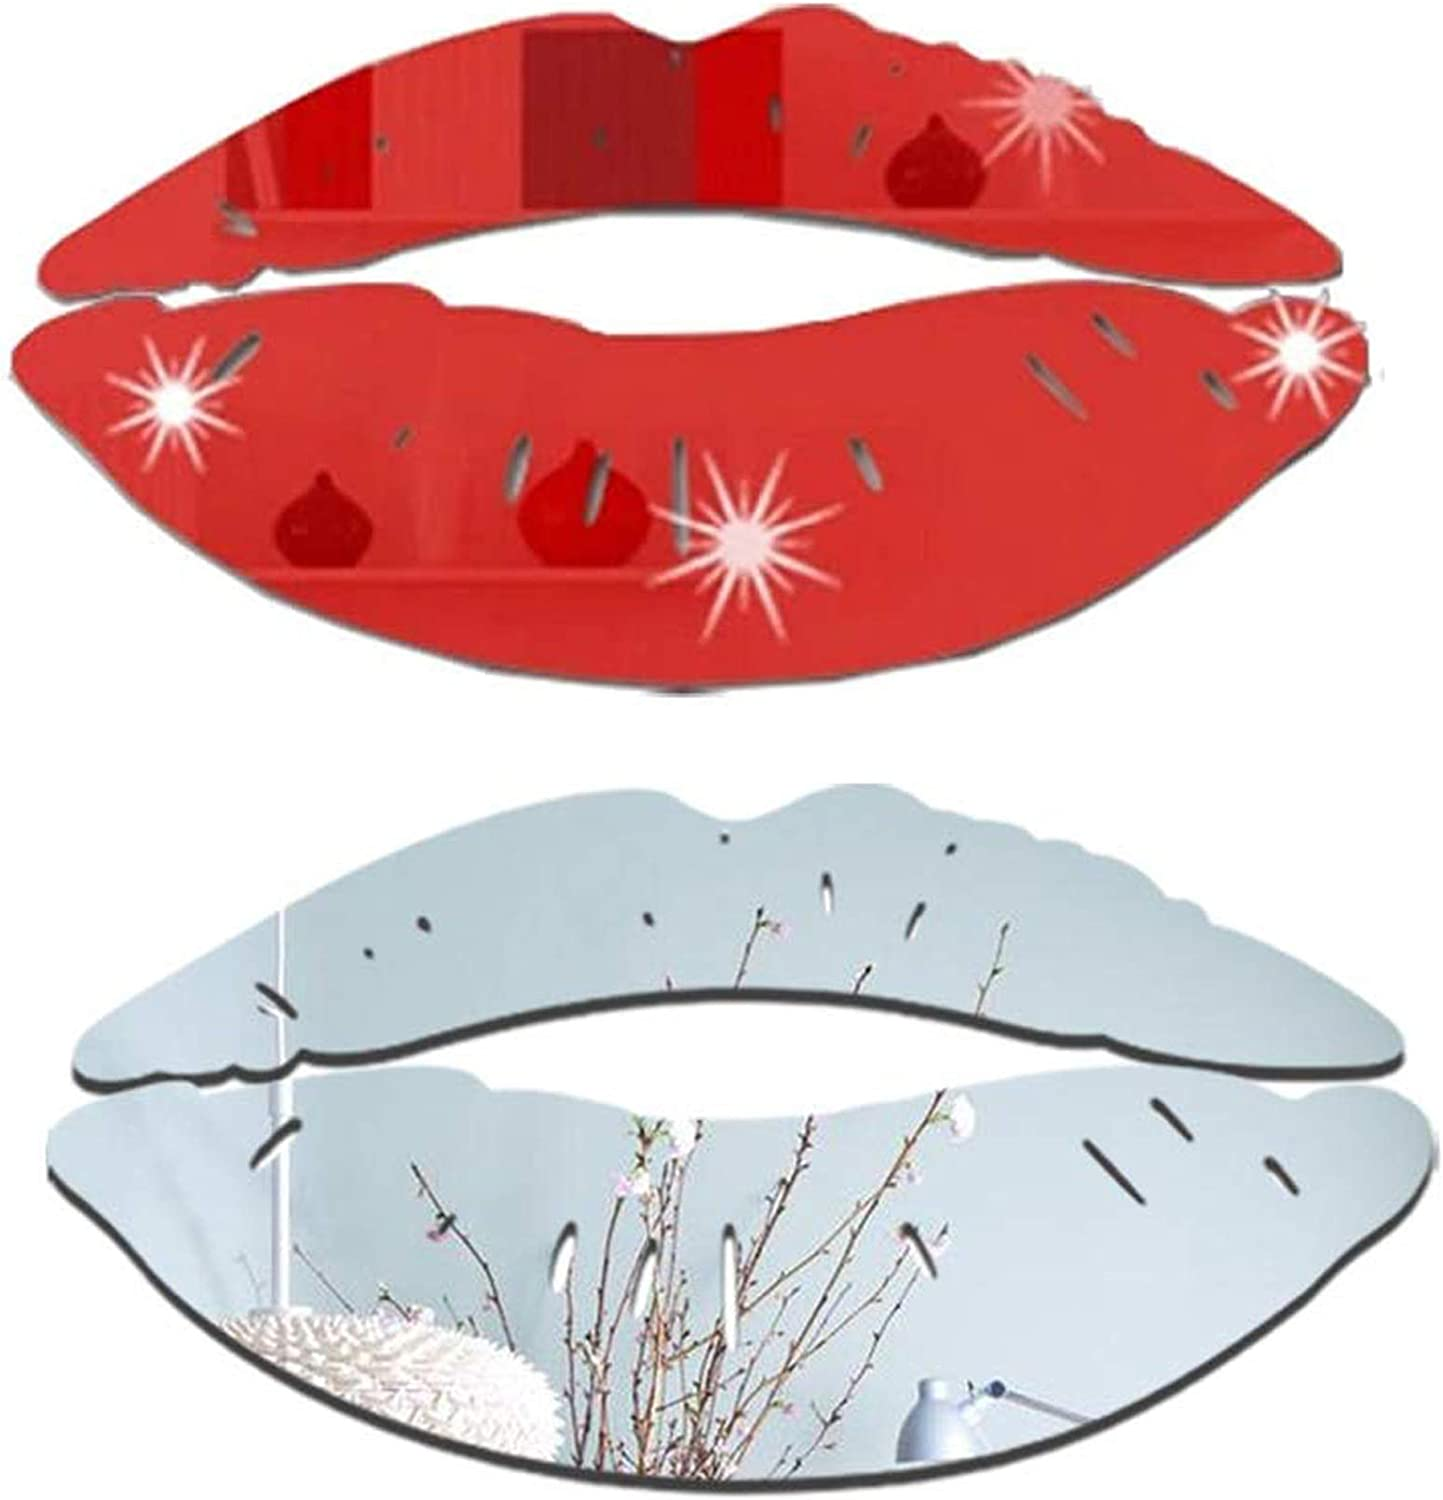 Lips Mirror Wall Stickers, 2 Sets 3D Kiss Shape Decals, Acrylic DIY Self-Adhesive Wallpaper Murals for Bedroom, Living Room, Bathroom Home Decor(Silver and Red)